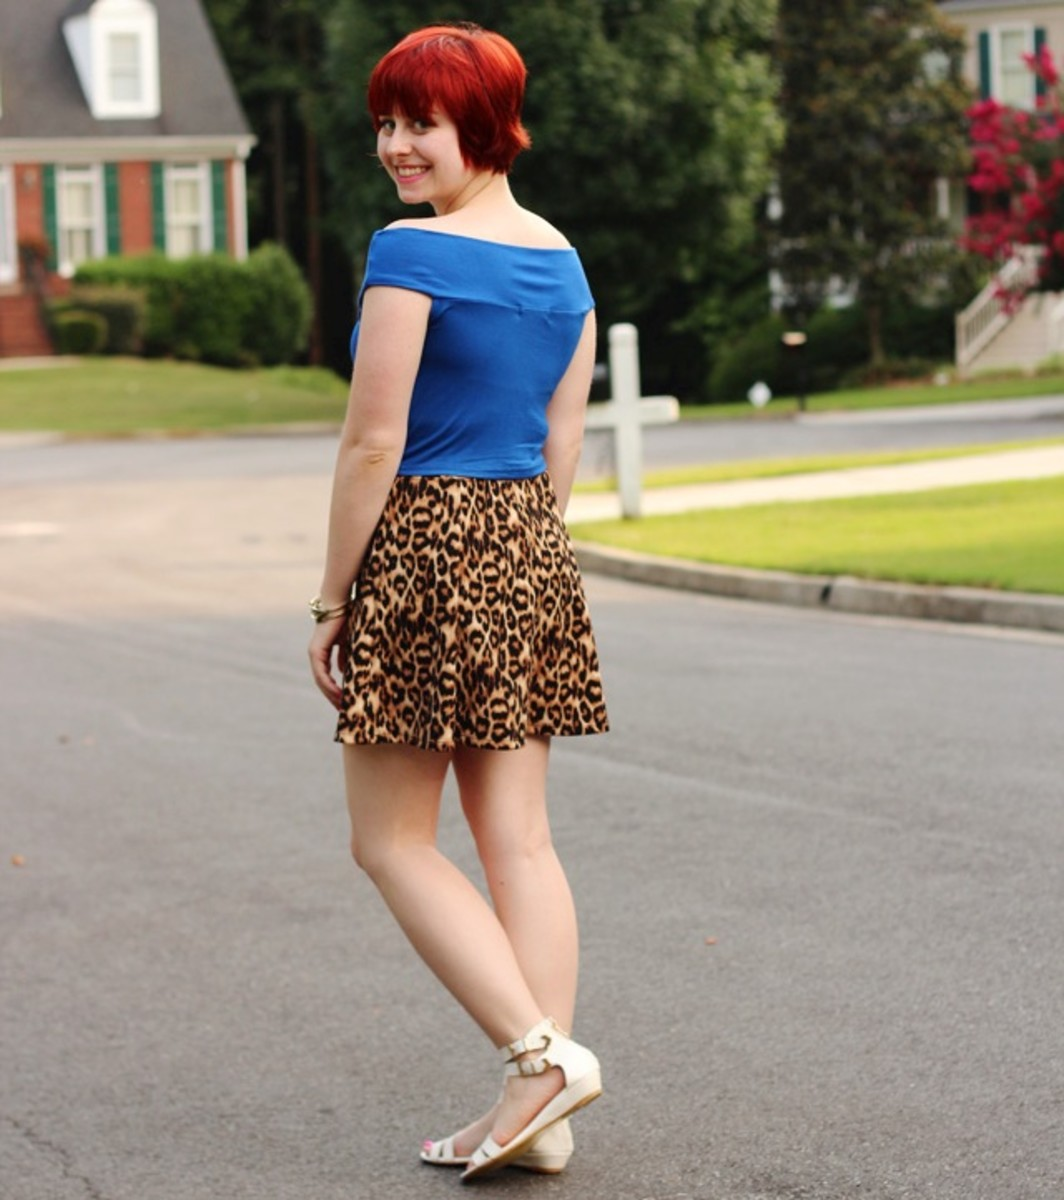 Patterned skater skirt outfit